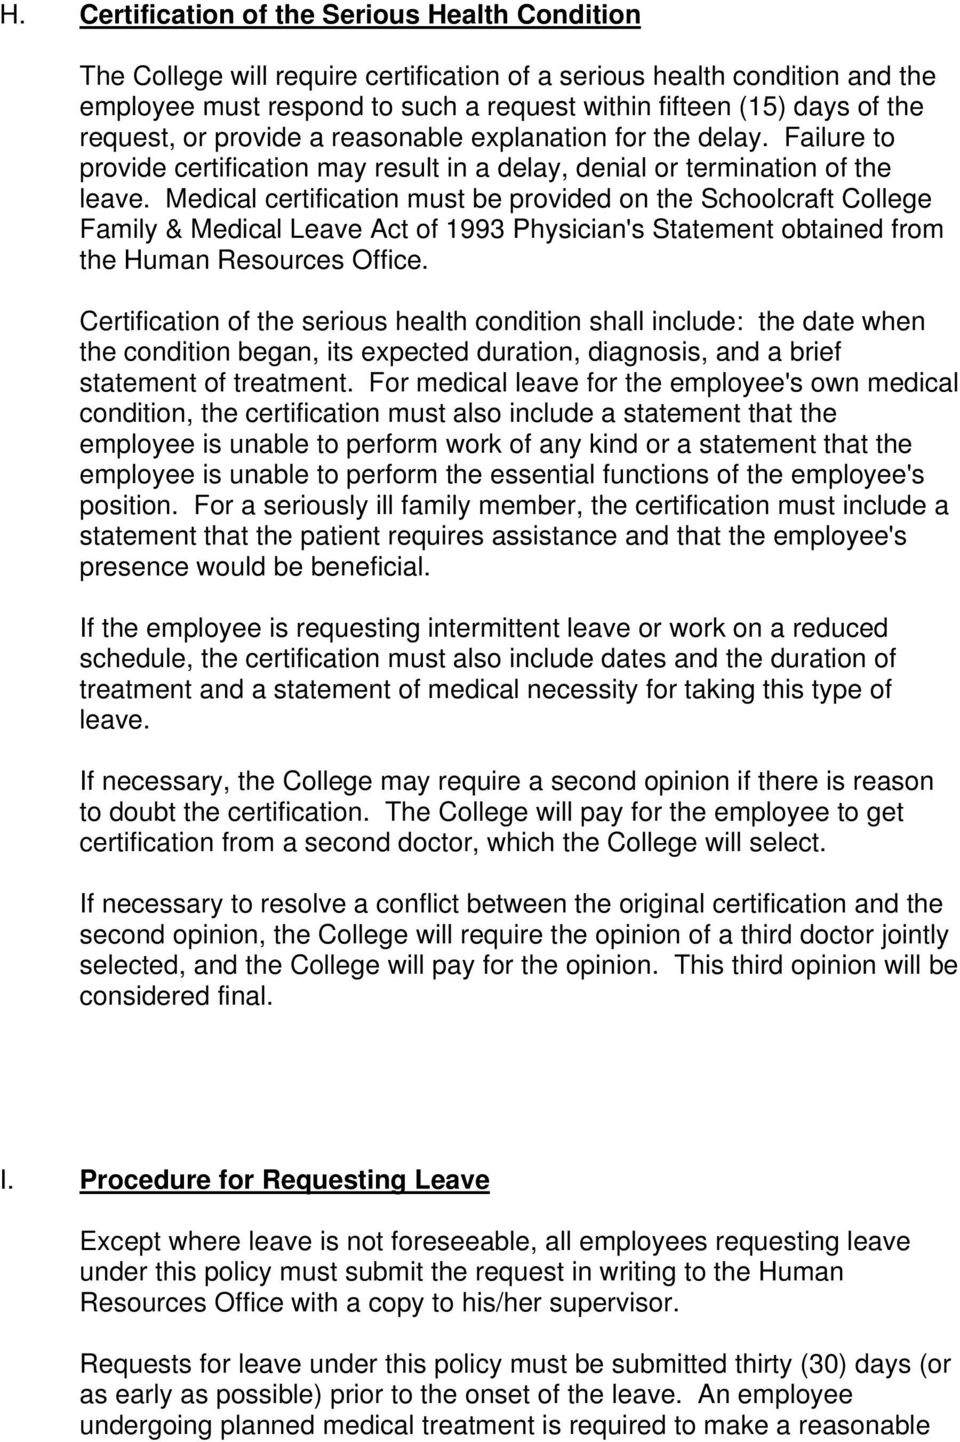 Medical certification must be provided on the Schoolcraft College Family & Medical Leave Act of 1993 Physician's Statement obtained from the Human Resources Office.